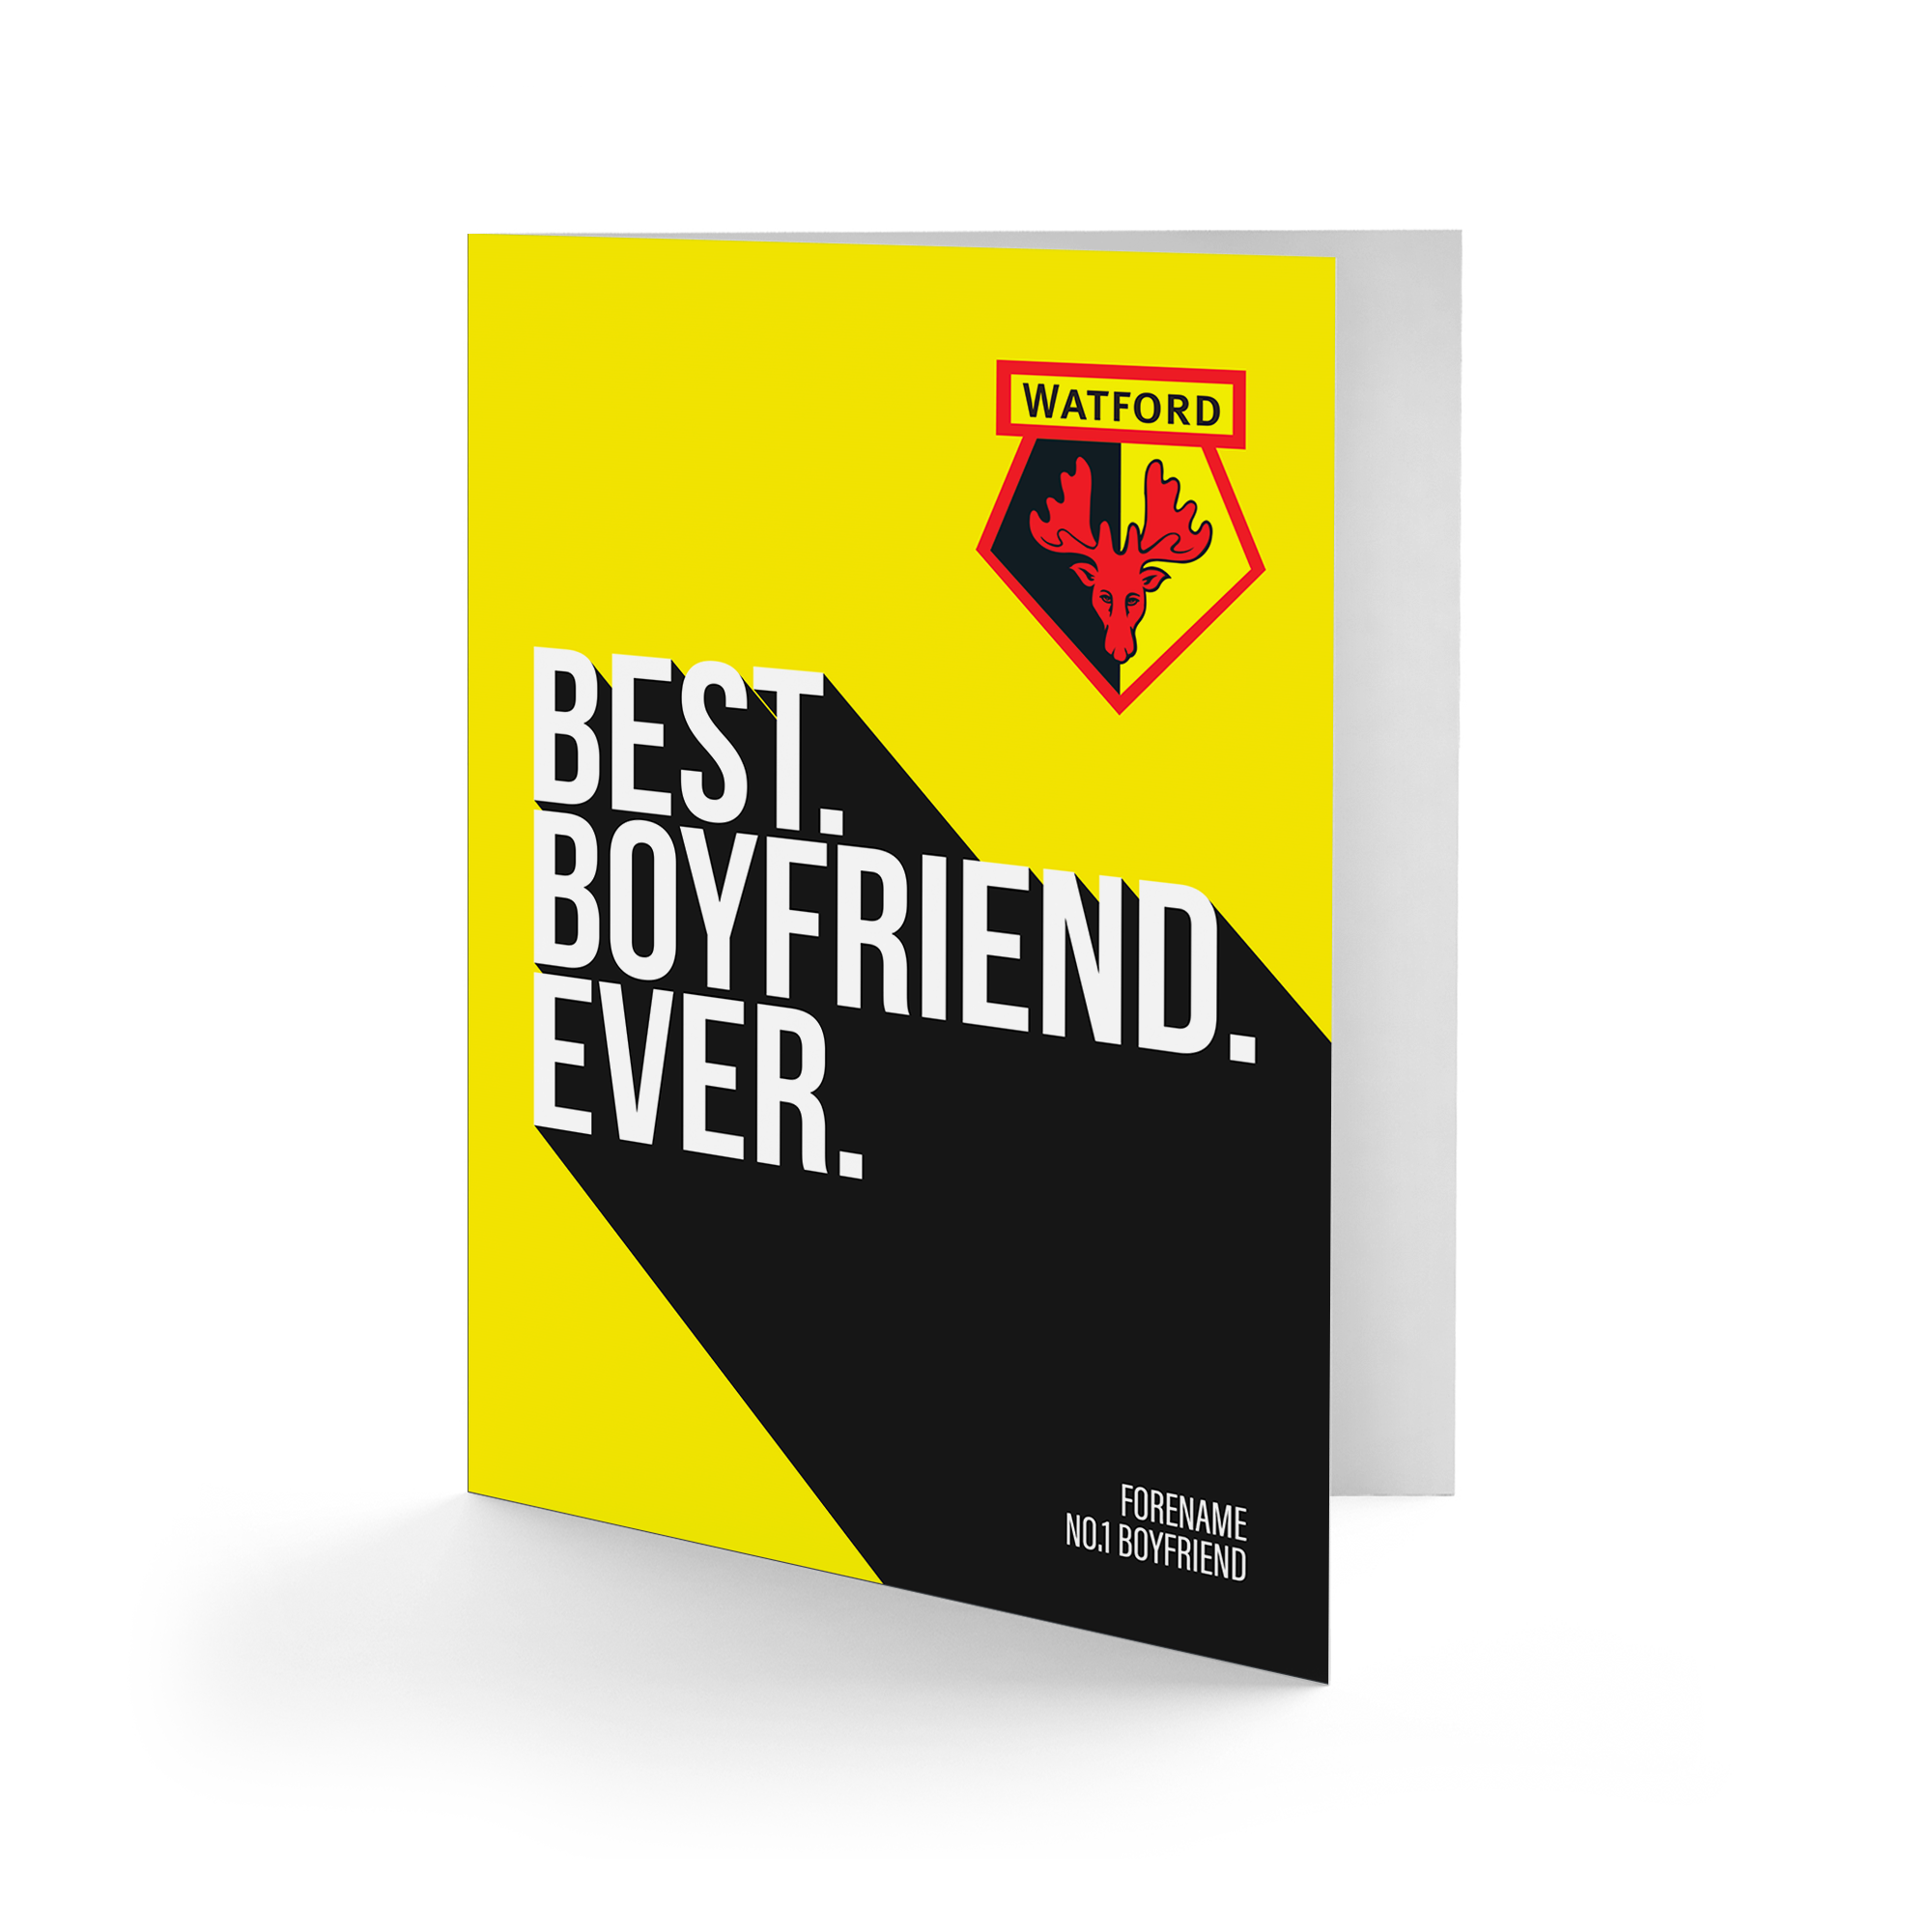 Watford FC Best Boyfriend Ever Card